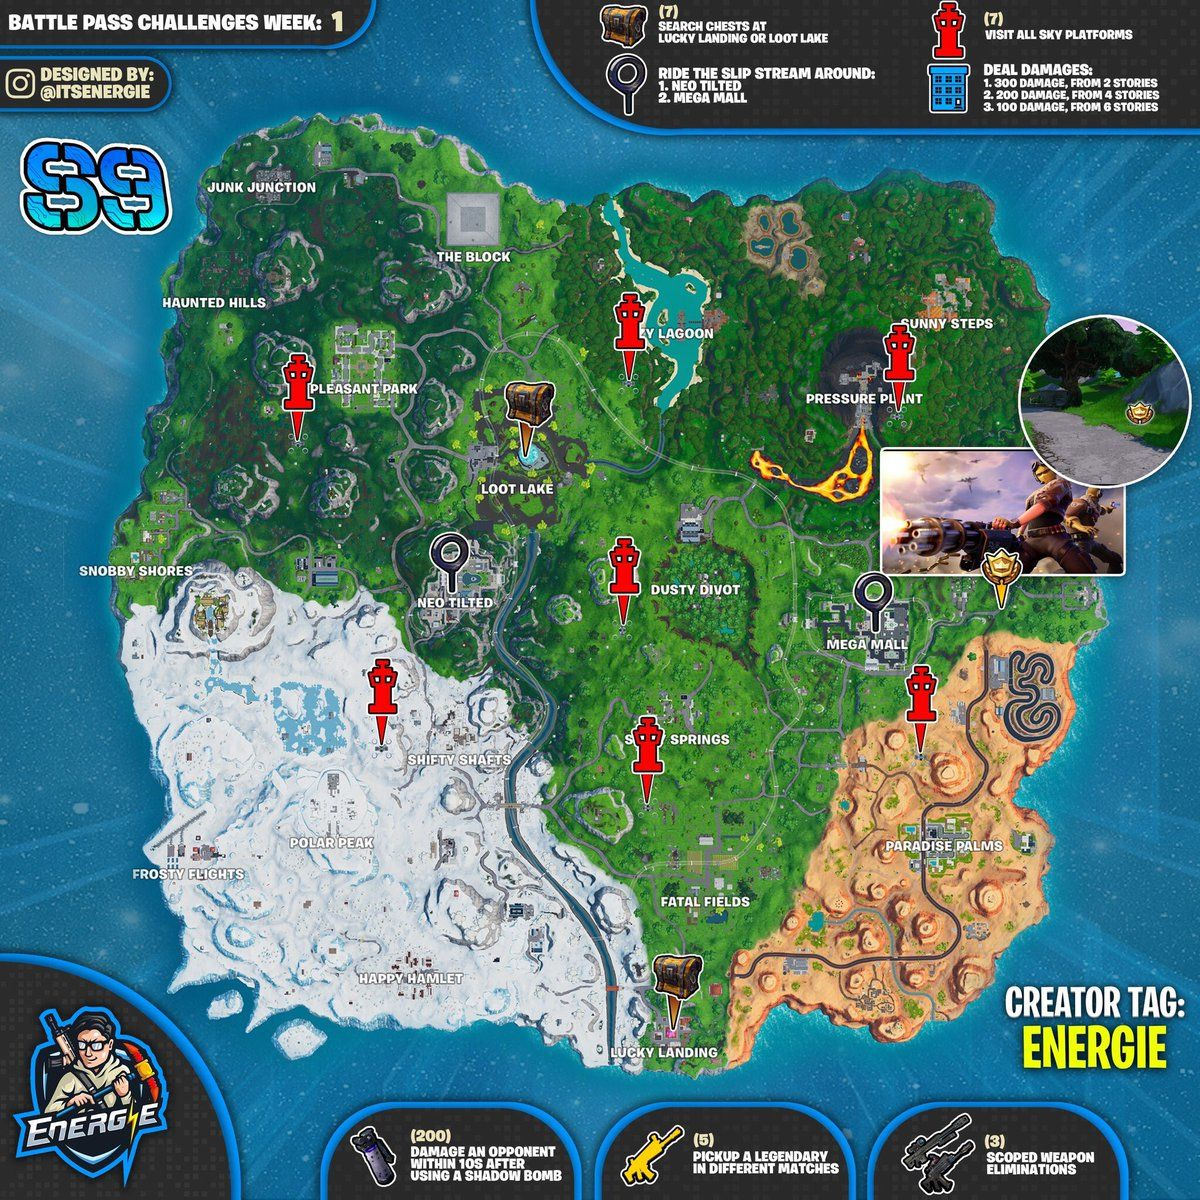 Fortnite Cheat Sheet Map For Season 9 Week 1 Challenges